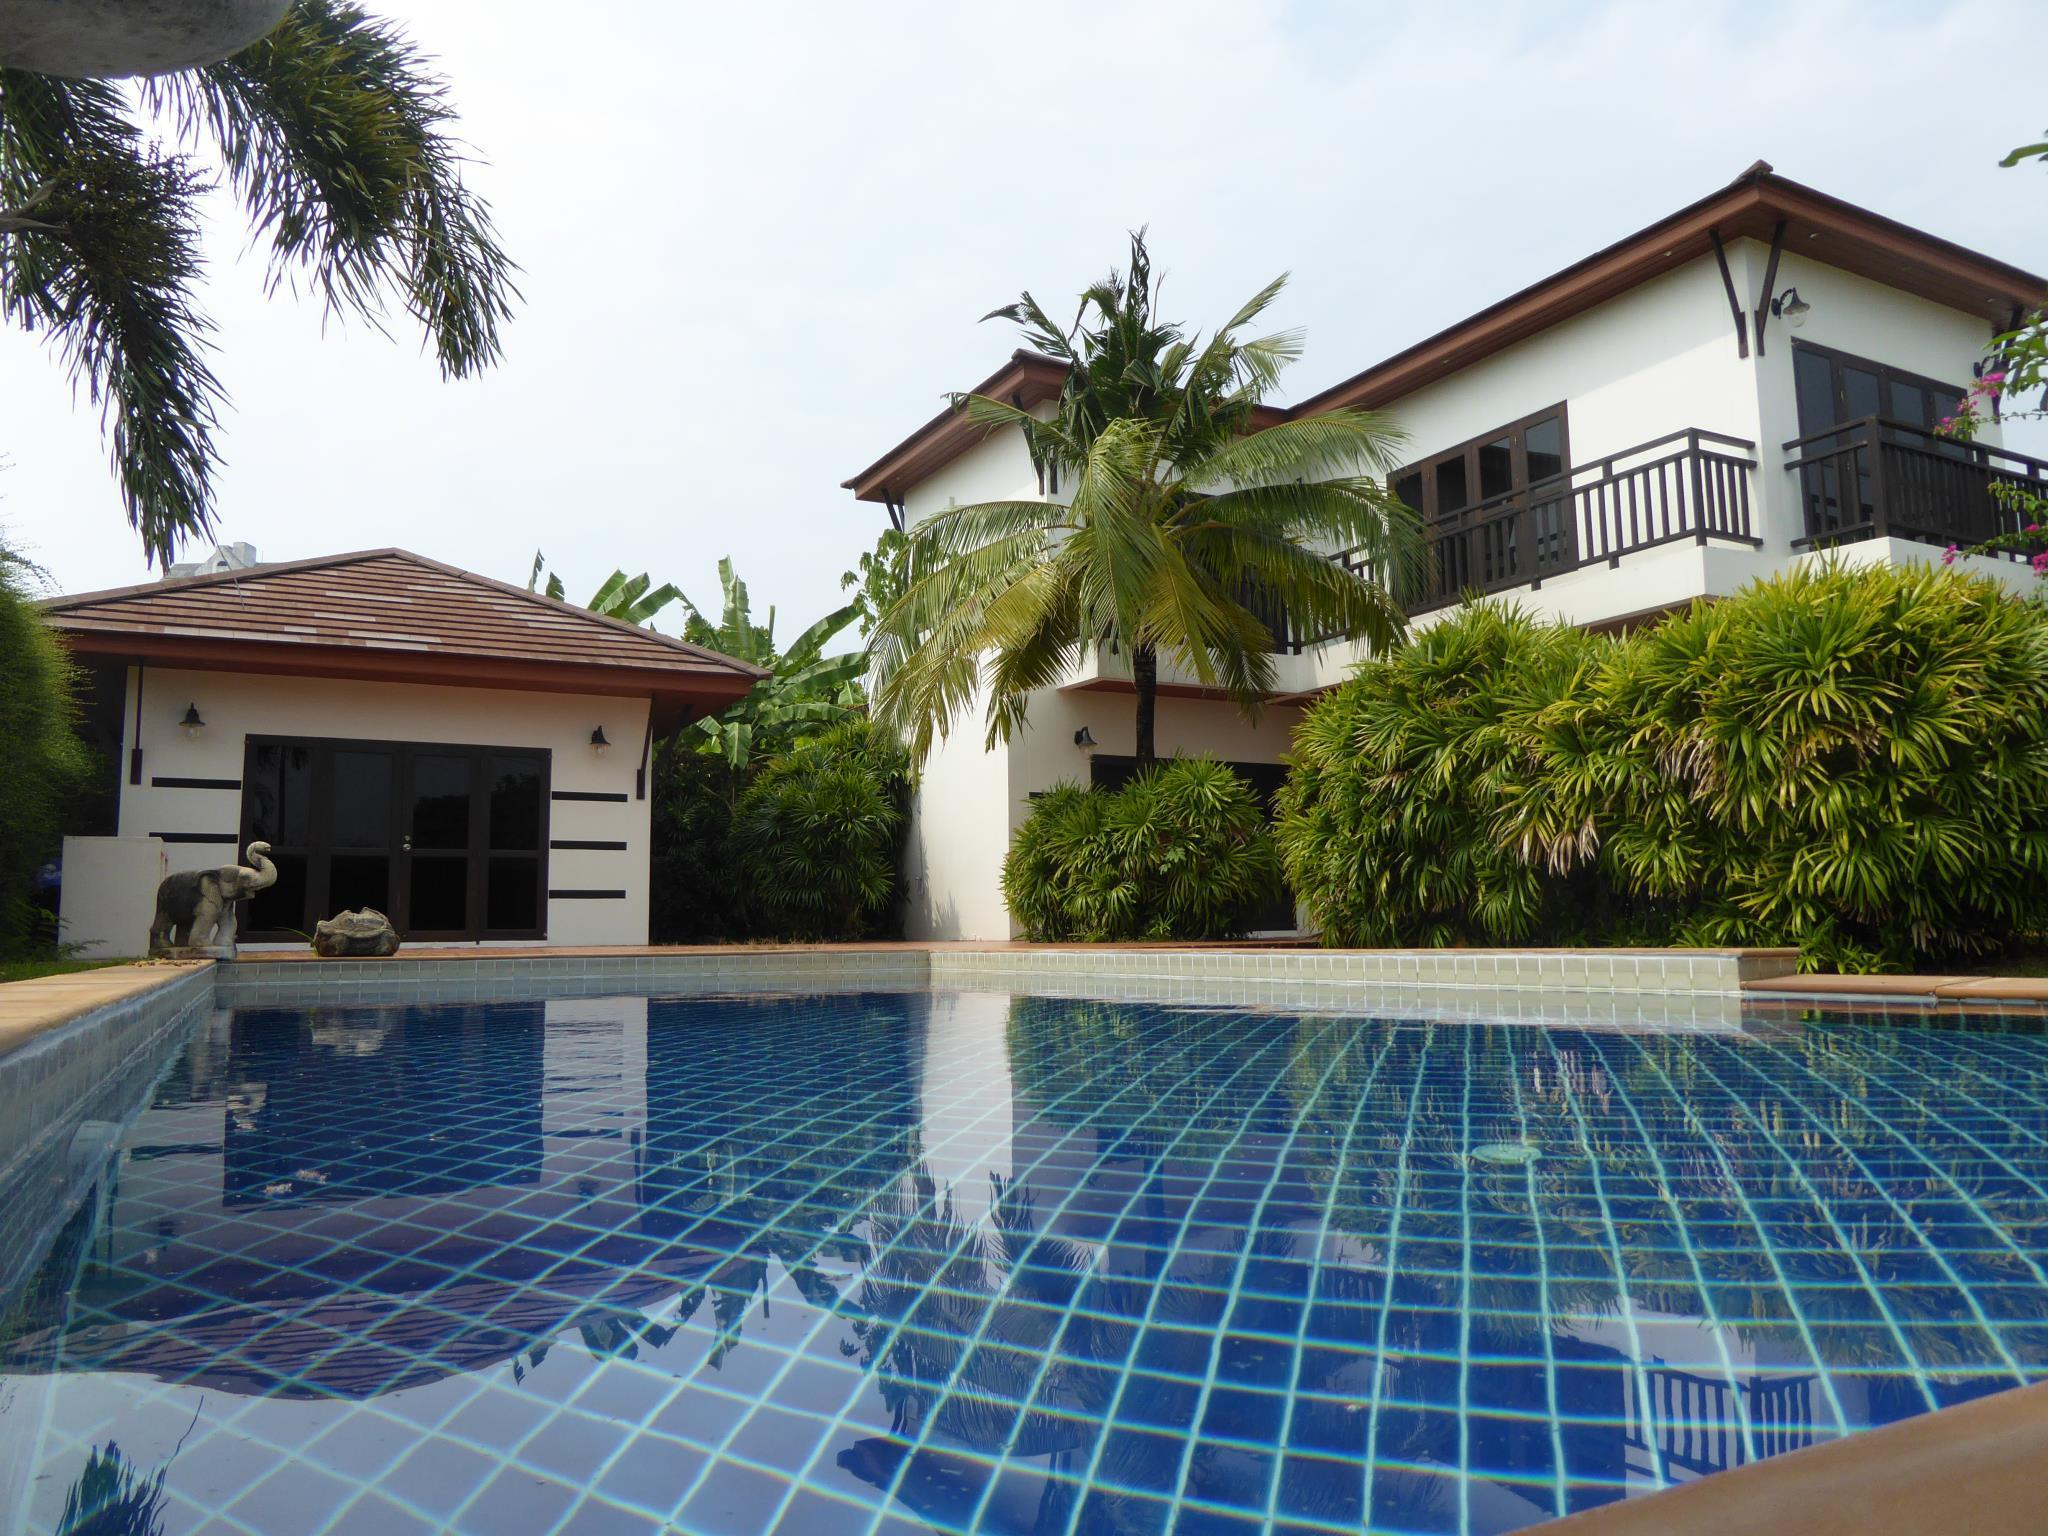 Tropicana Beach Villa at Vip Chain Resort Tropicana Beach Villa at Vip Chain Resort